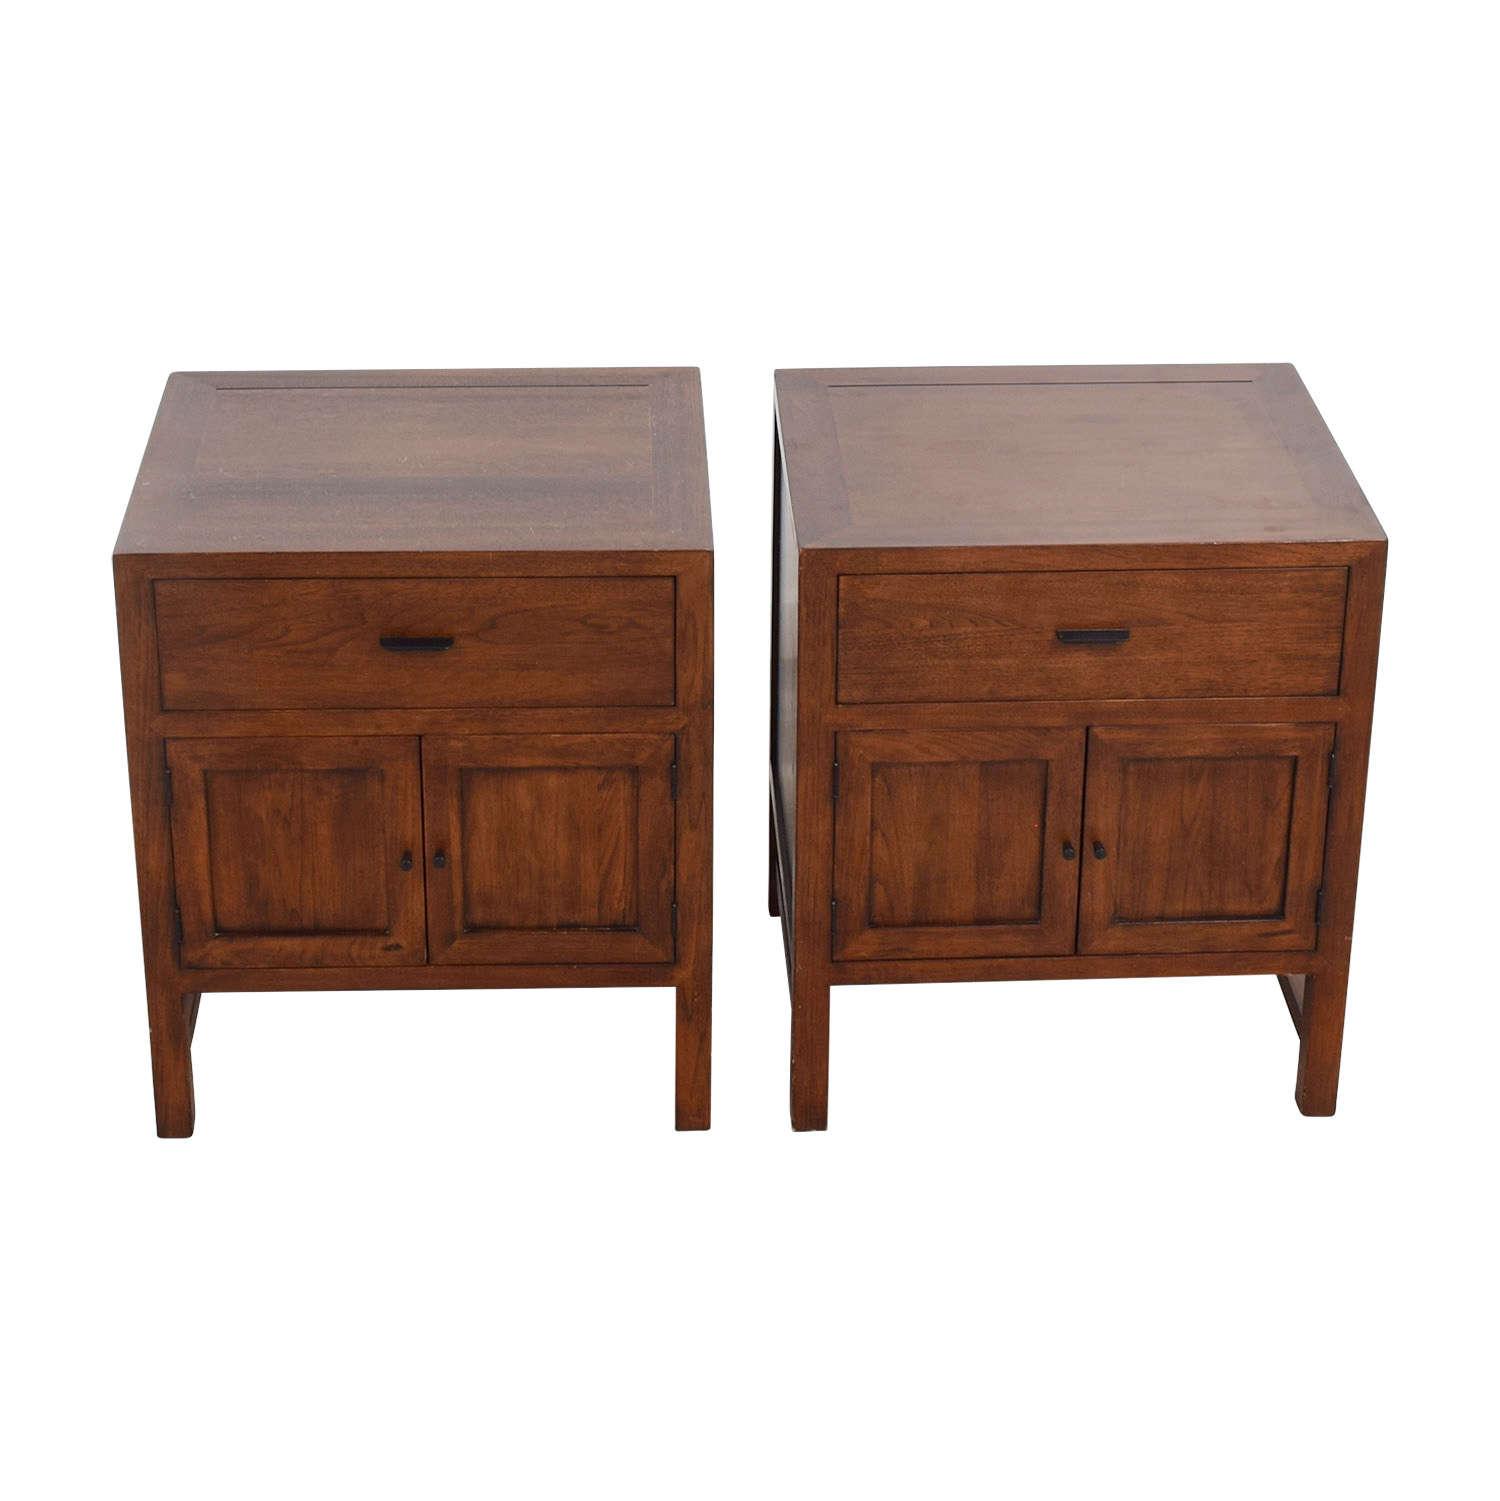 buy Room & Board One-Drawer with Storage Nightstands Room & Board End Tables